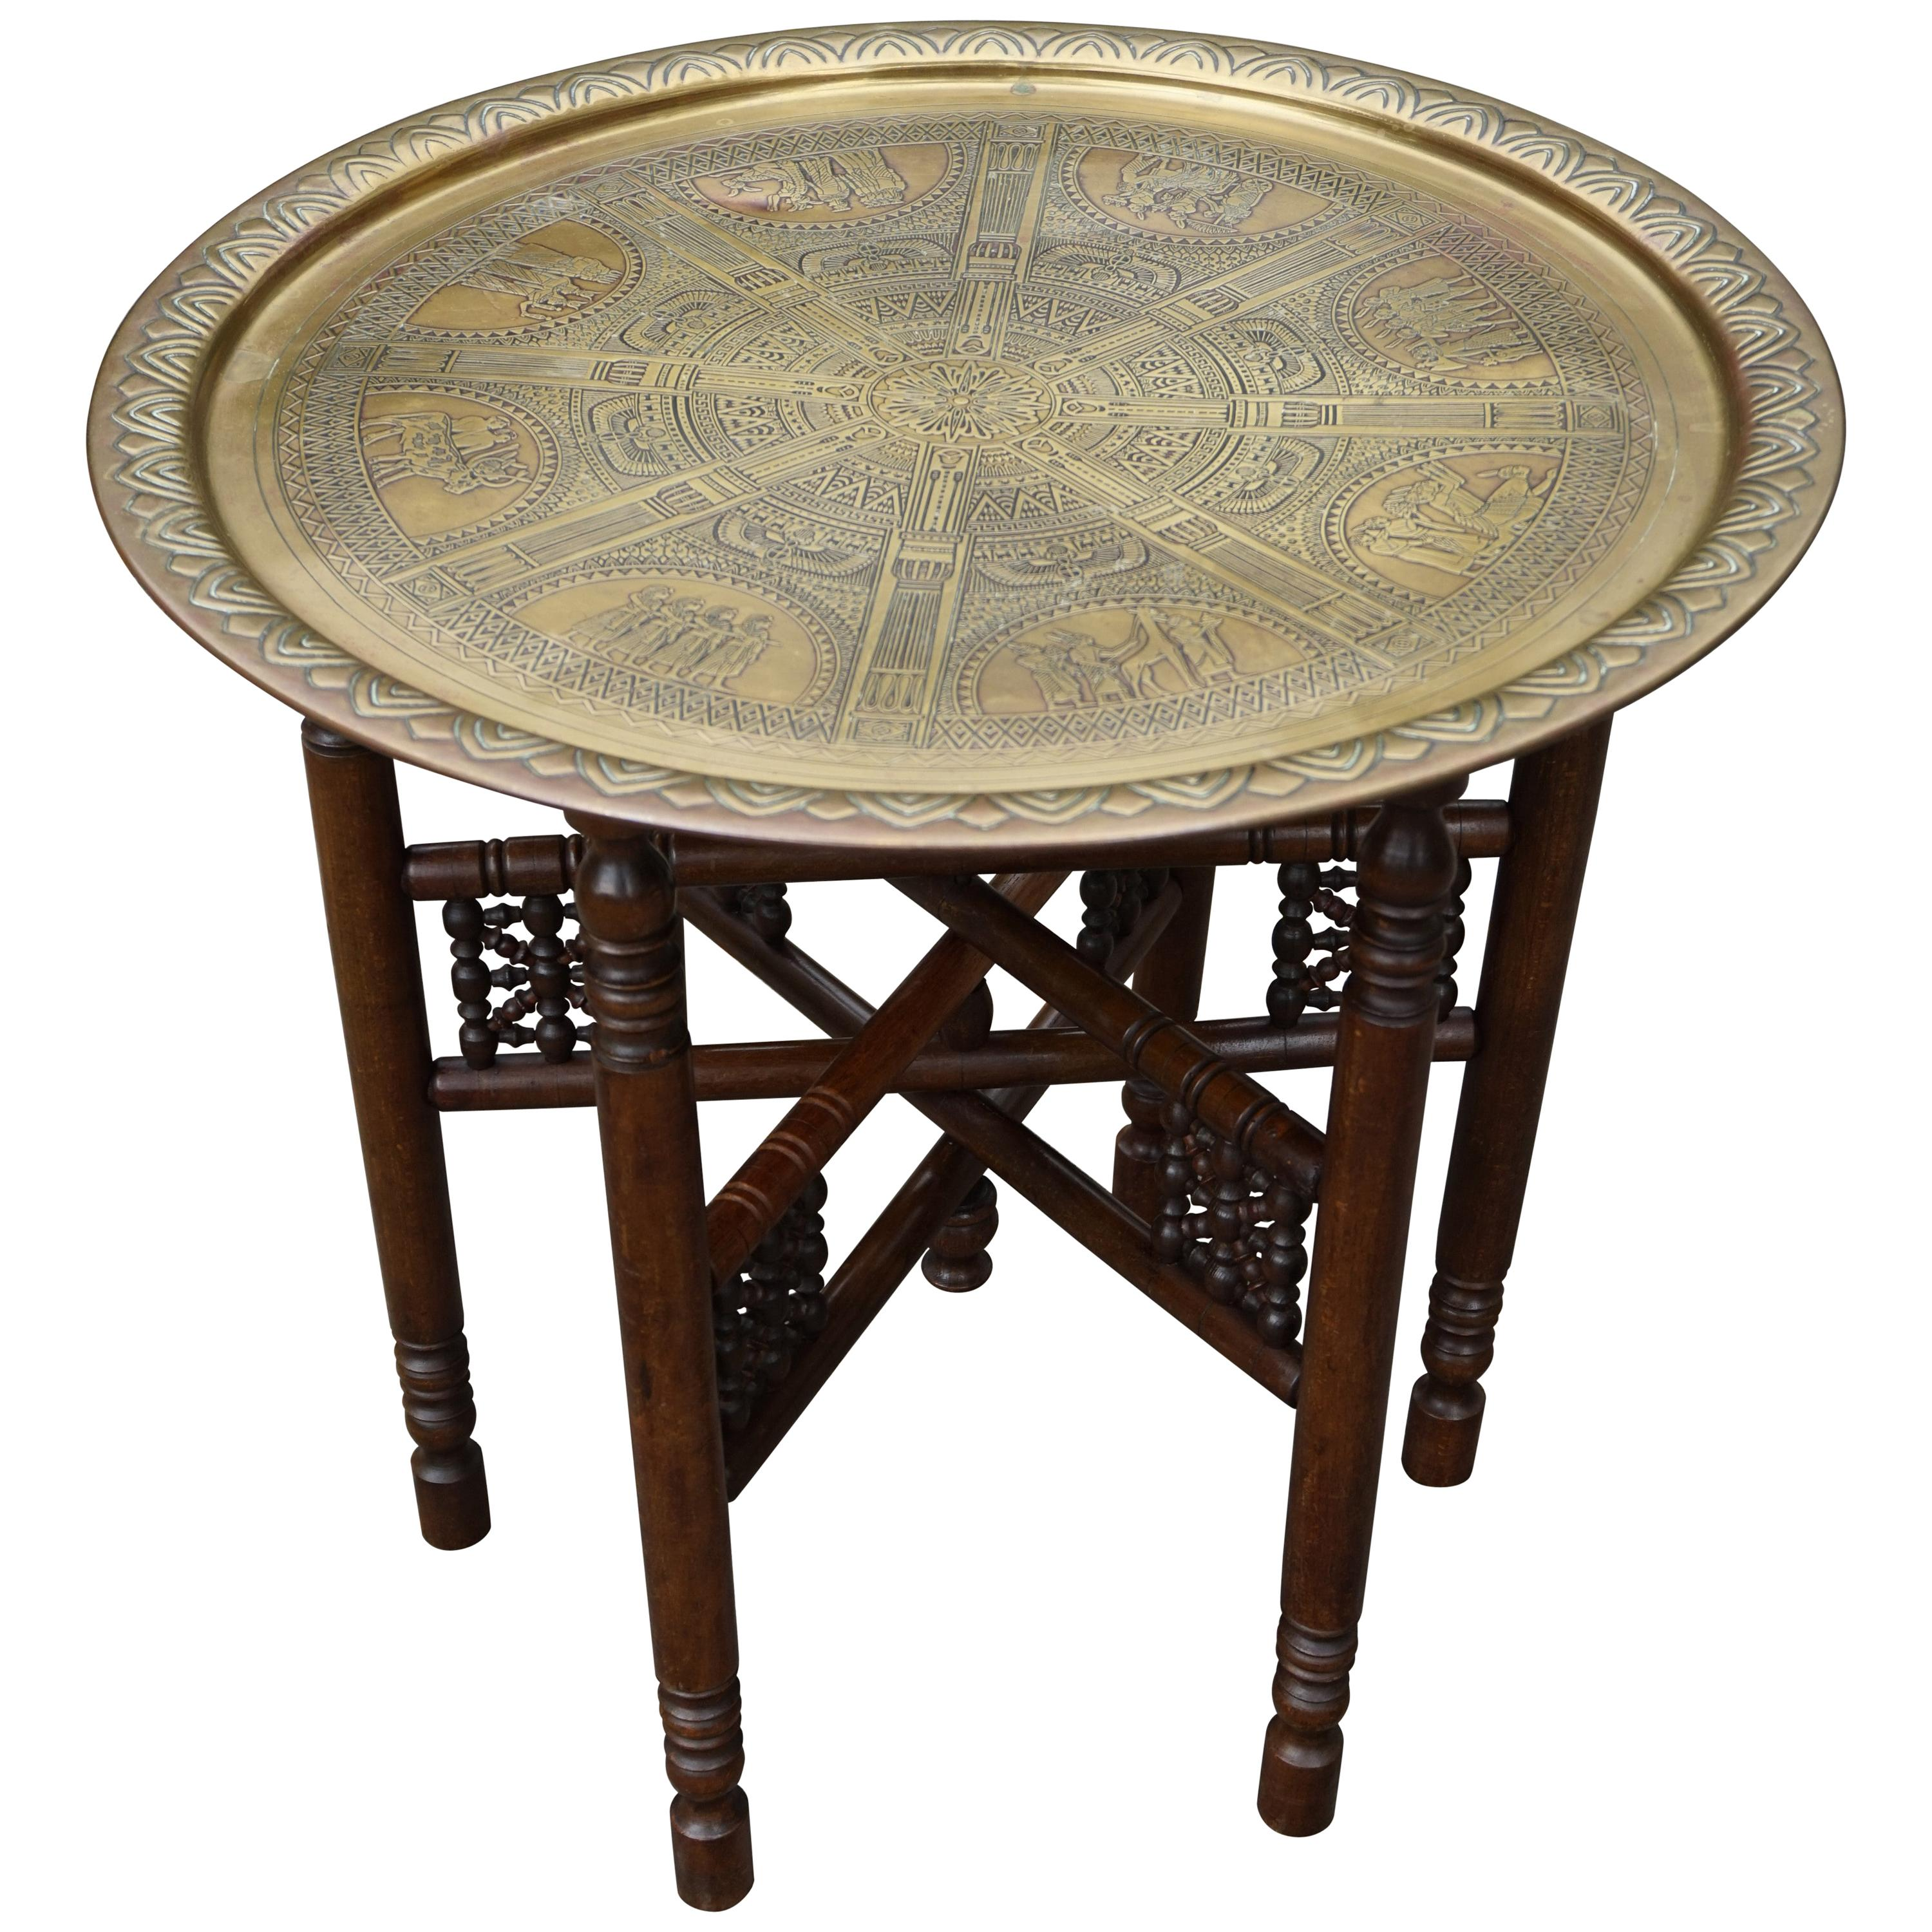 Handcrafted Egyptian Revival Brass Tray Table with Islamic Design Wooden Base